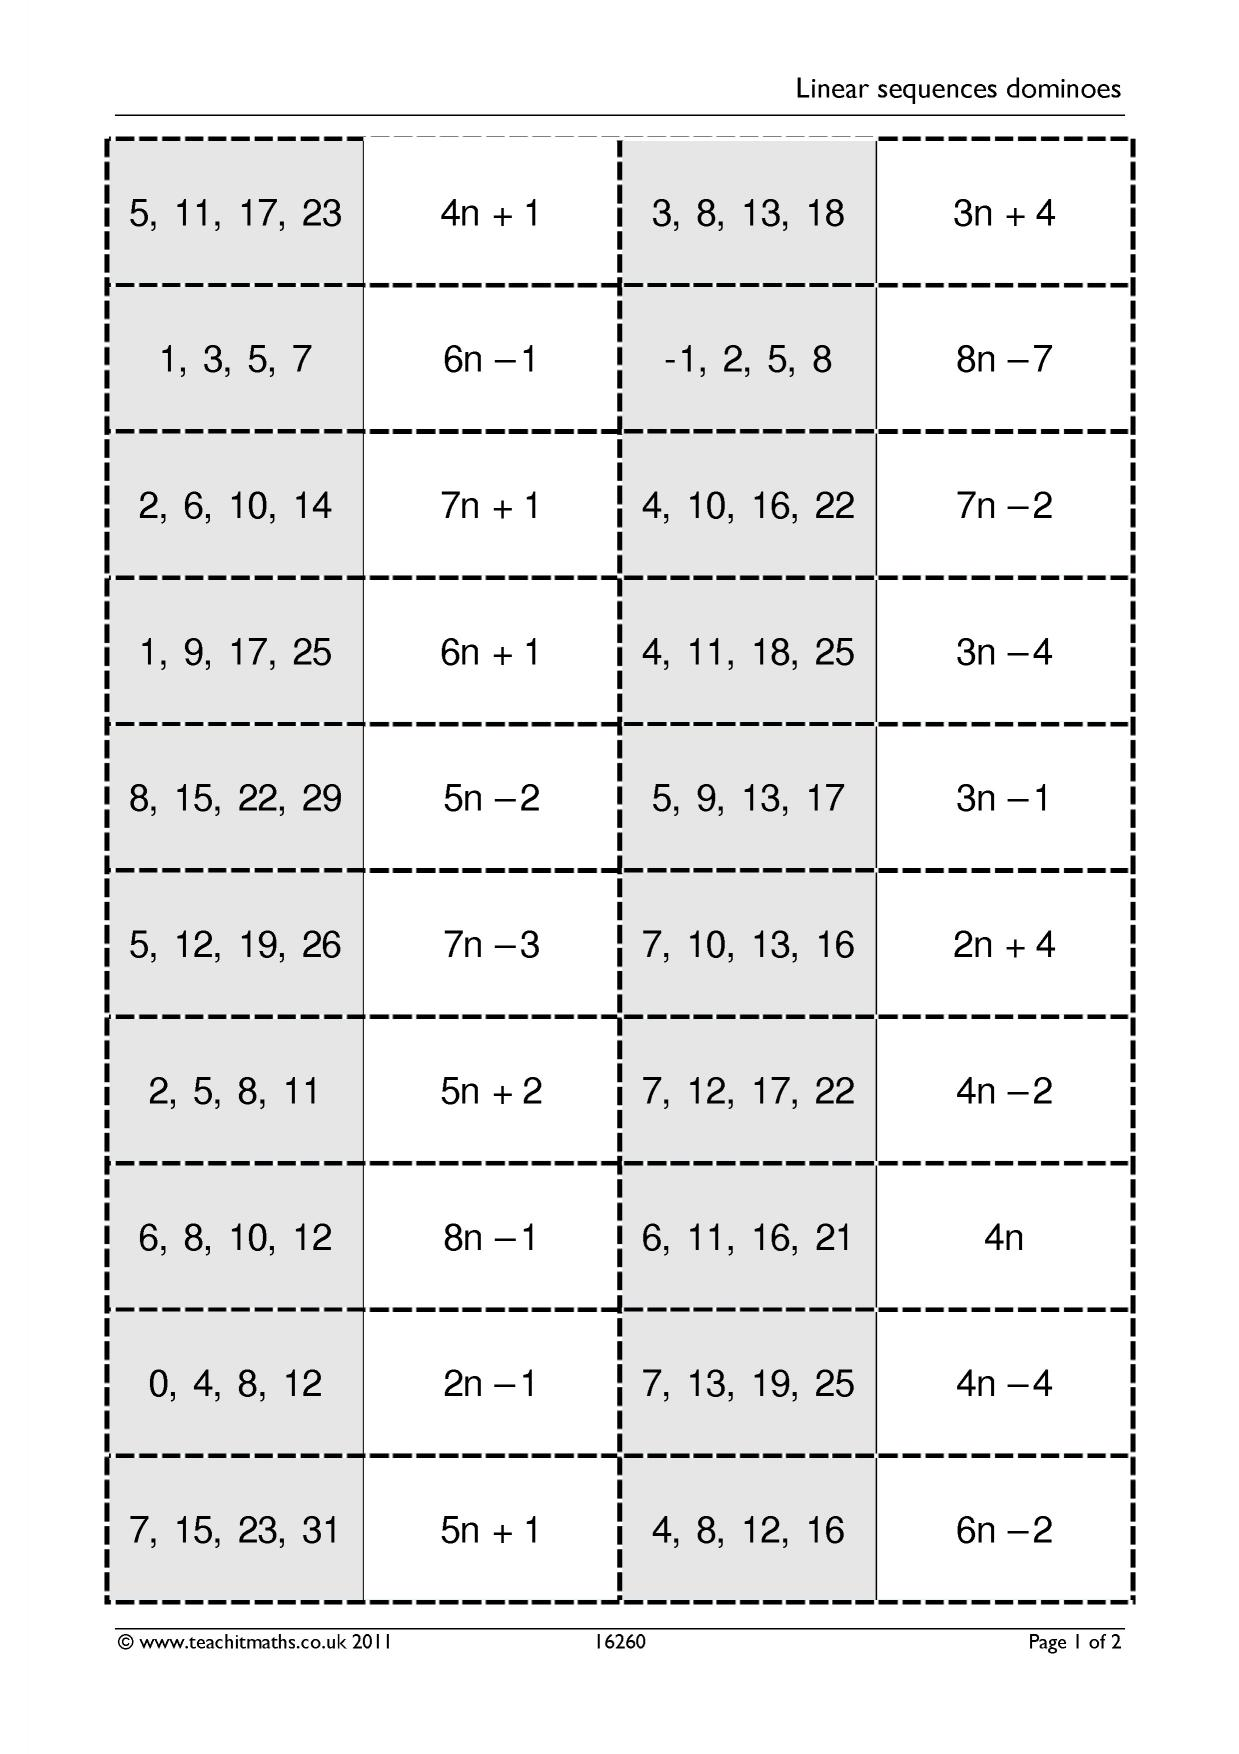 Linear Sequences Dominoes